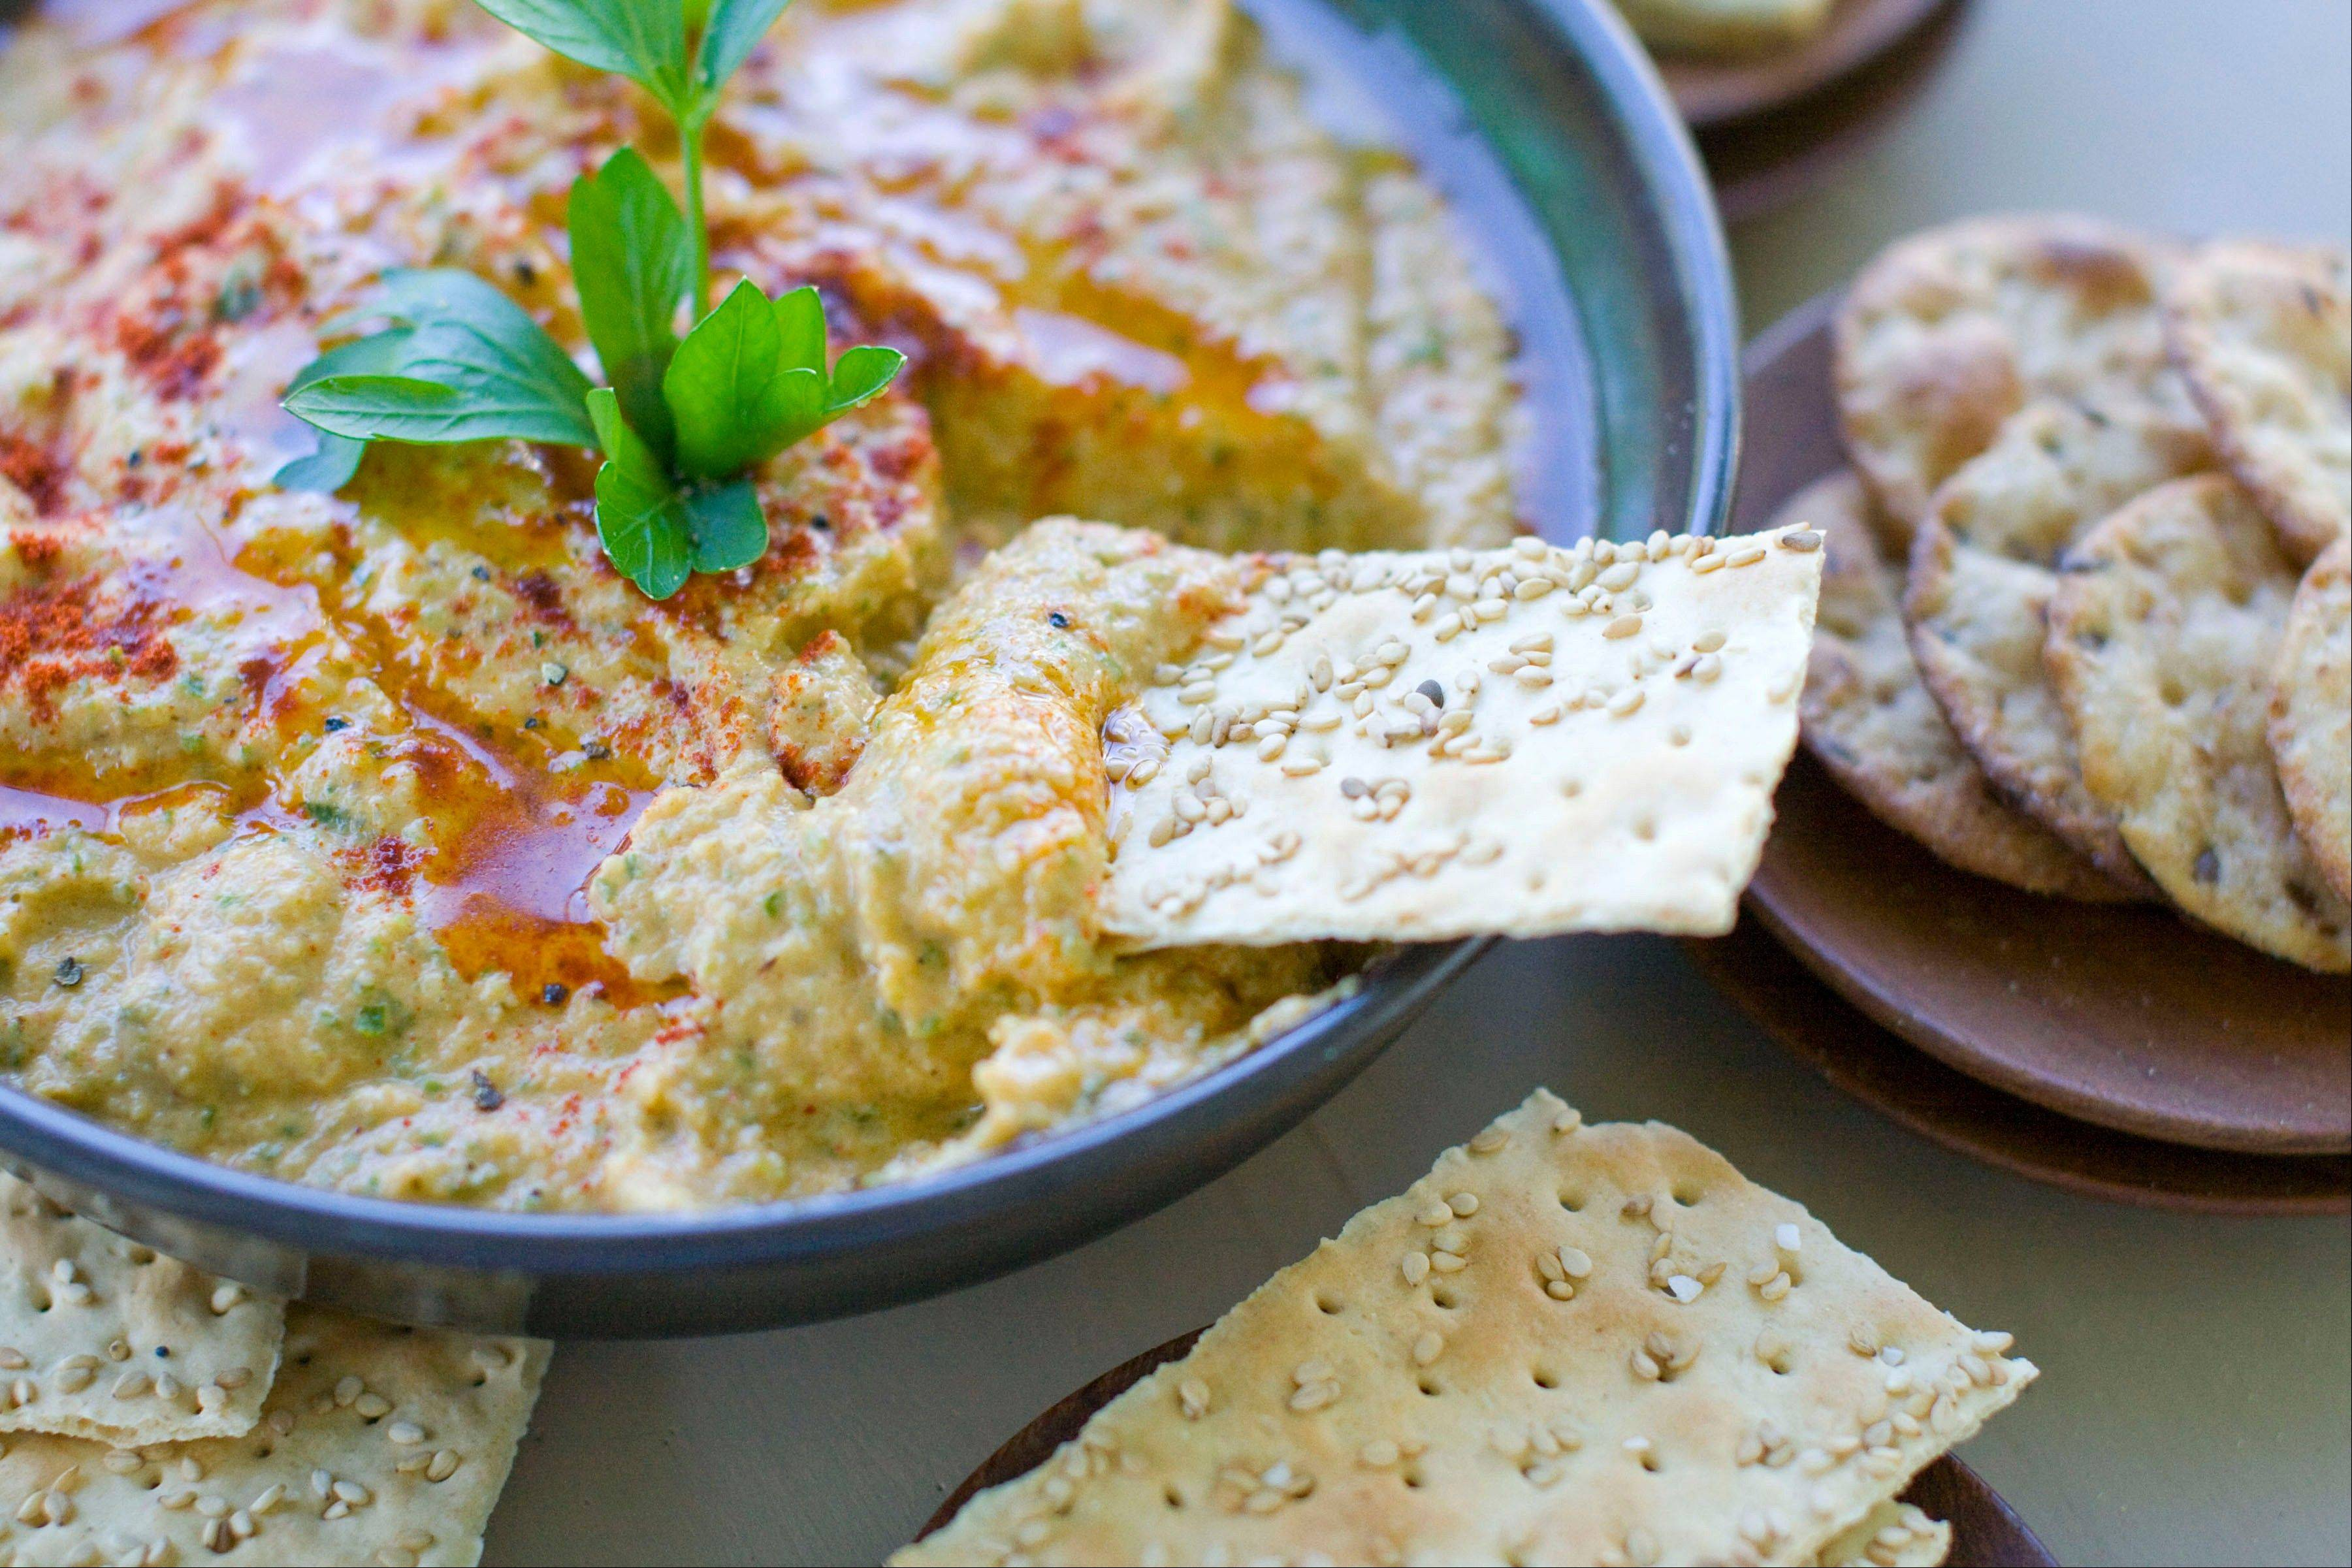 Grilled Zucchini Hummus is a tasty way to use up late summer's harvest.